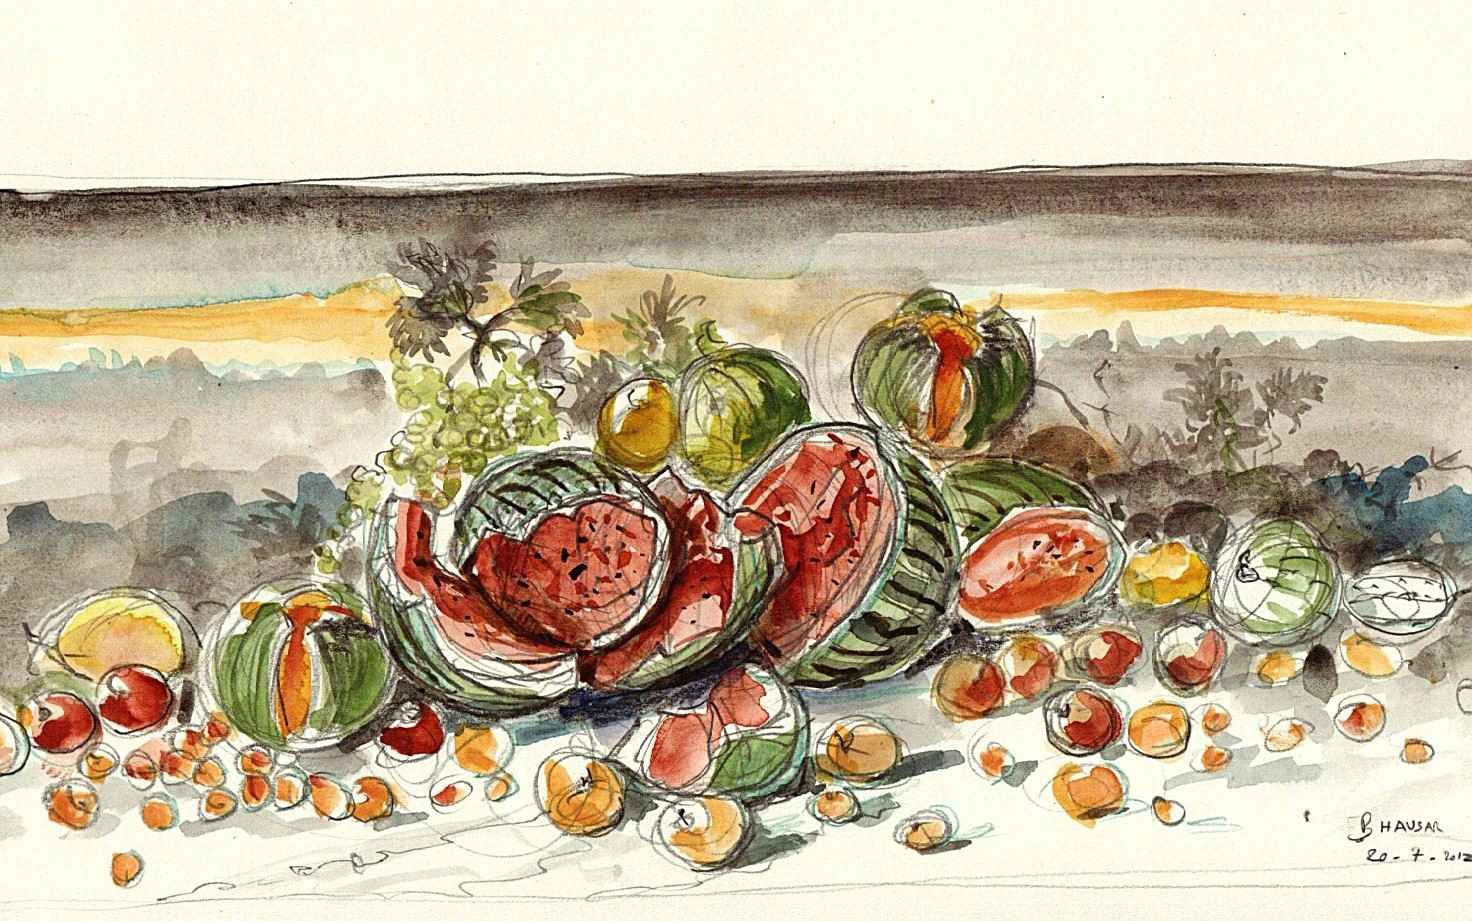 Sous l 39 orage grande nature morte de fruits 14 8 2012 - Dessin nature morte ...